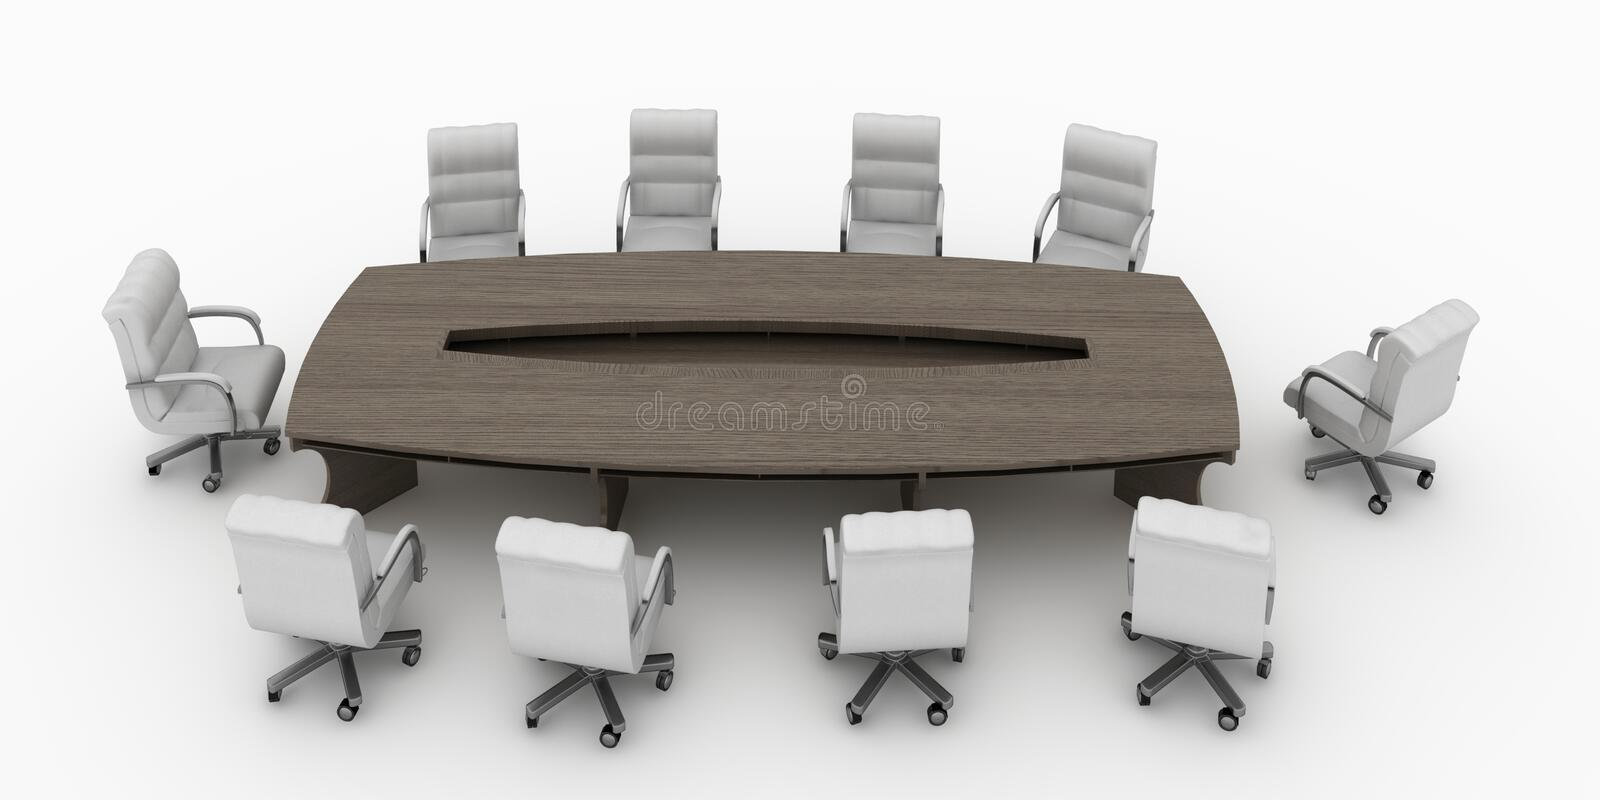 Modern conference table with chairs isolated. 3d render modern conference table with chairs isolated